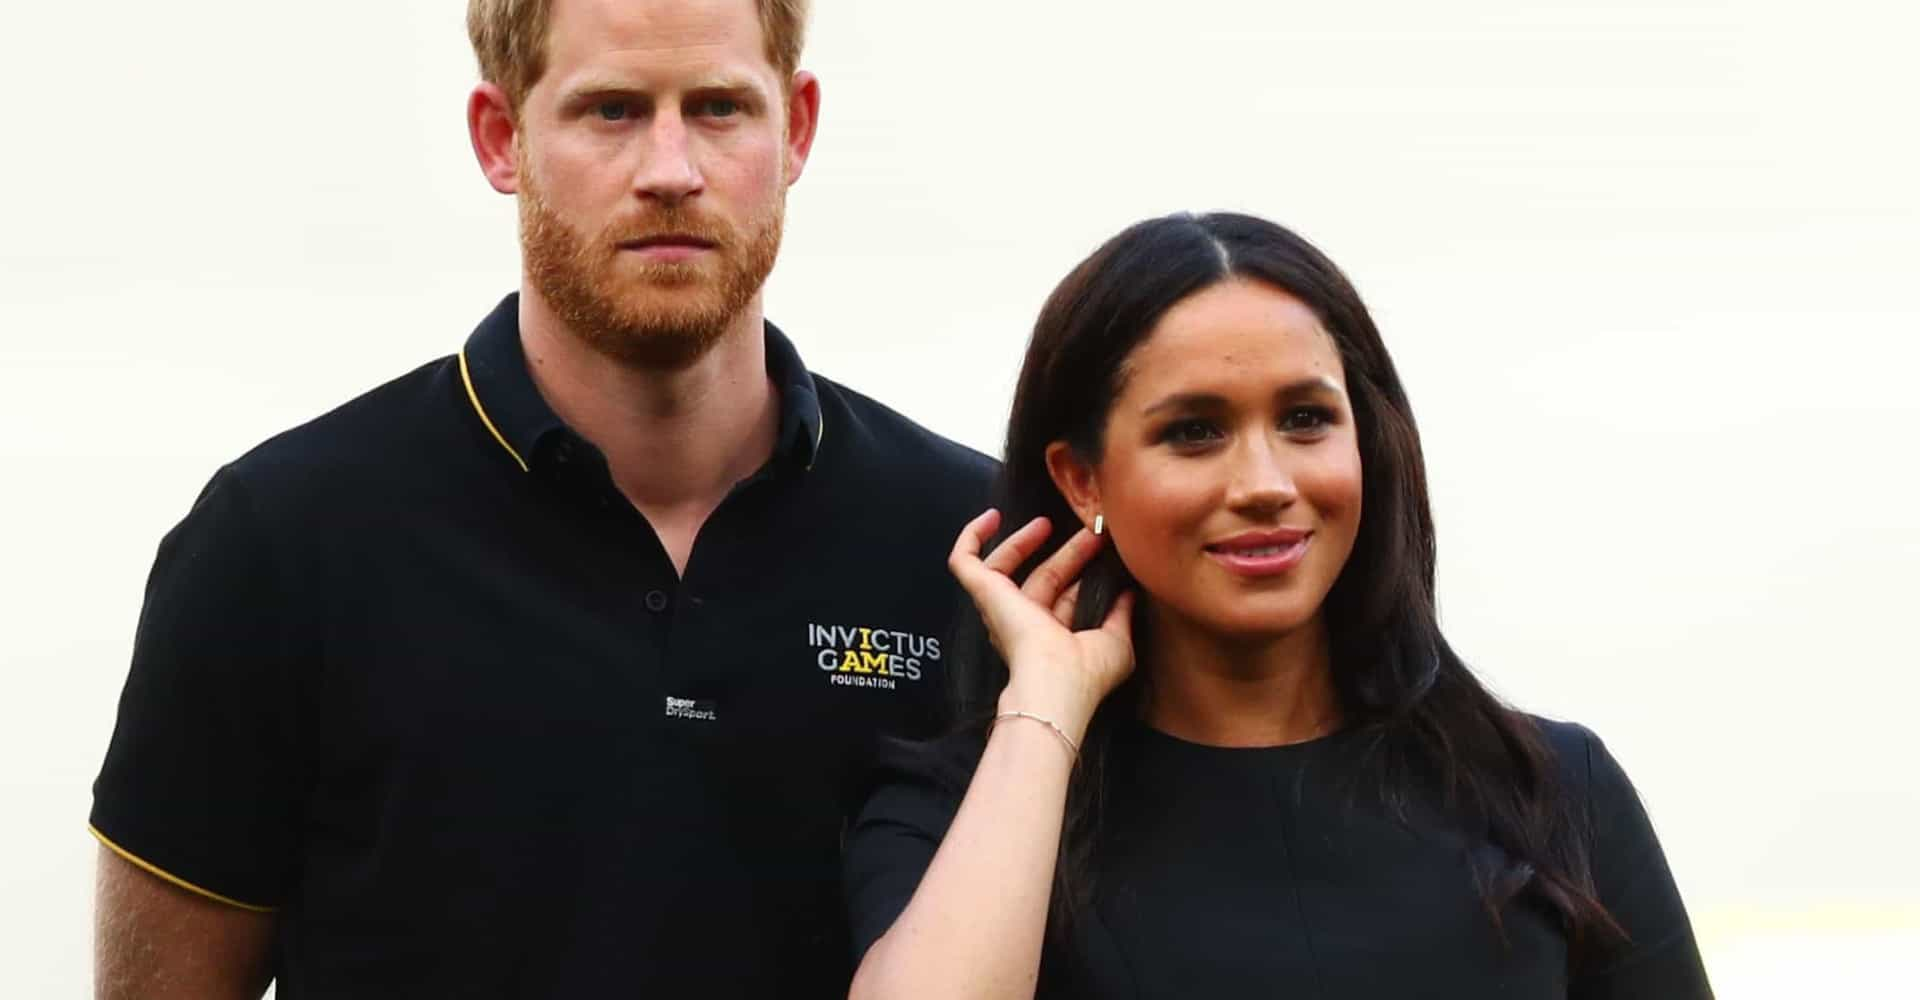 Are Harry and Meghan among the most hypocritical celebs?